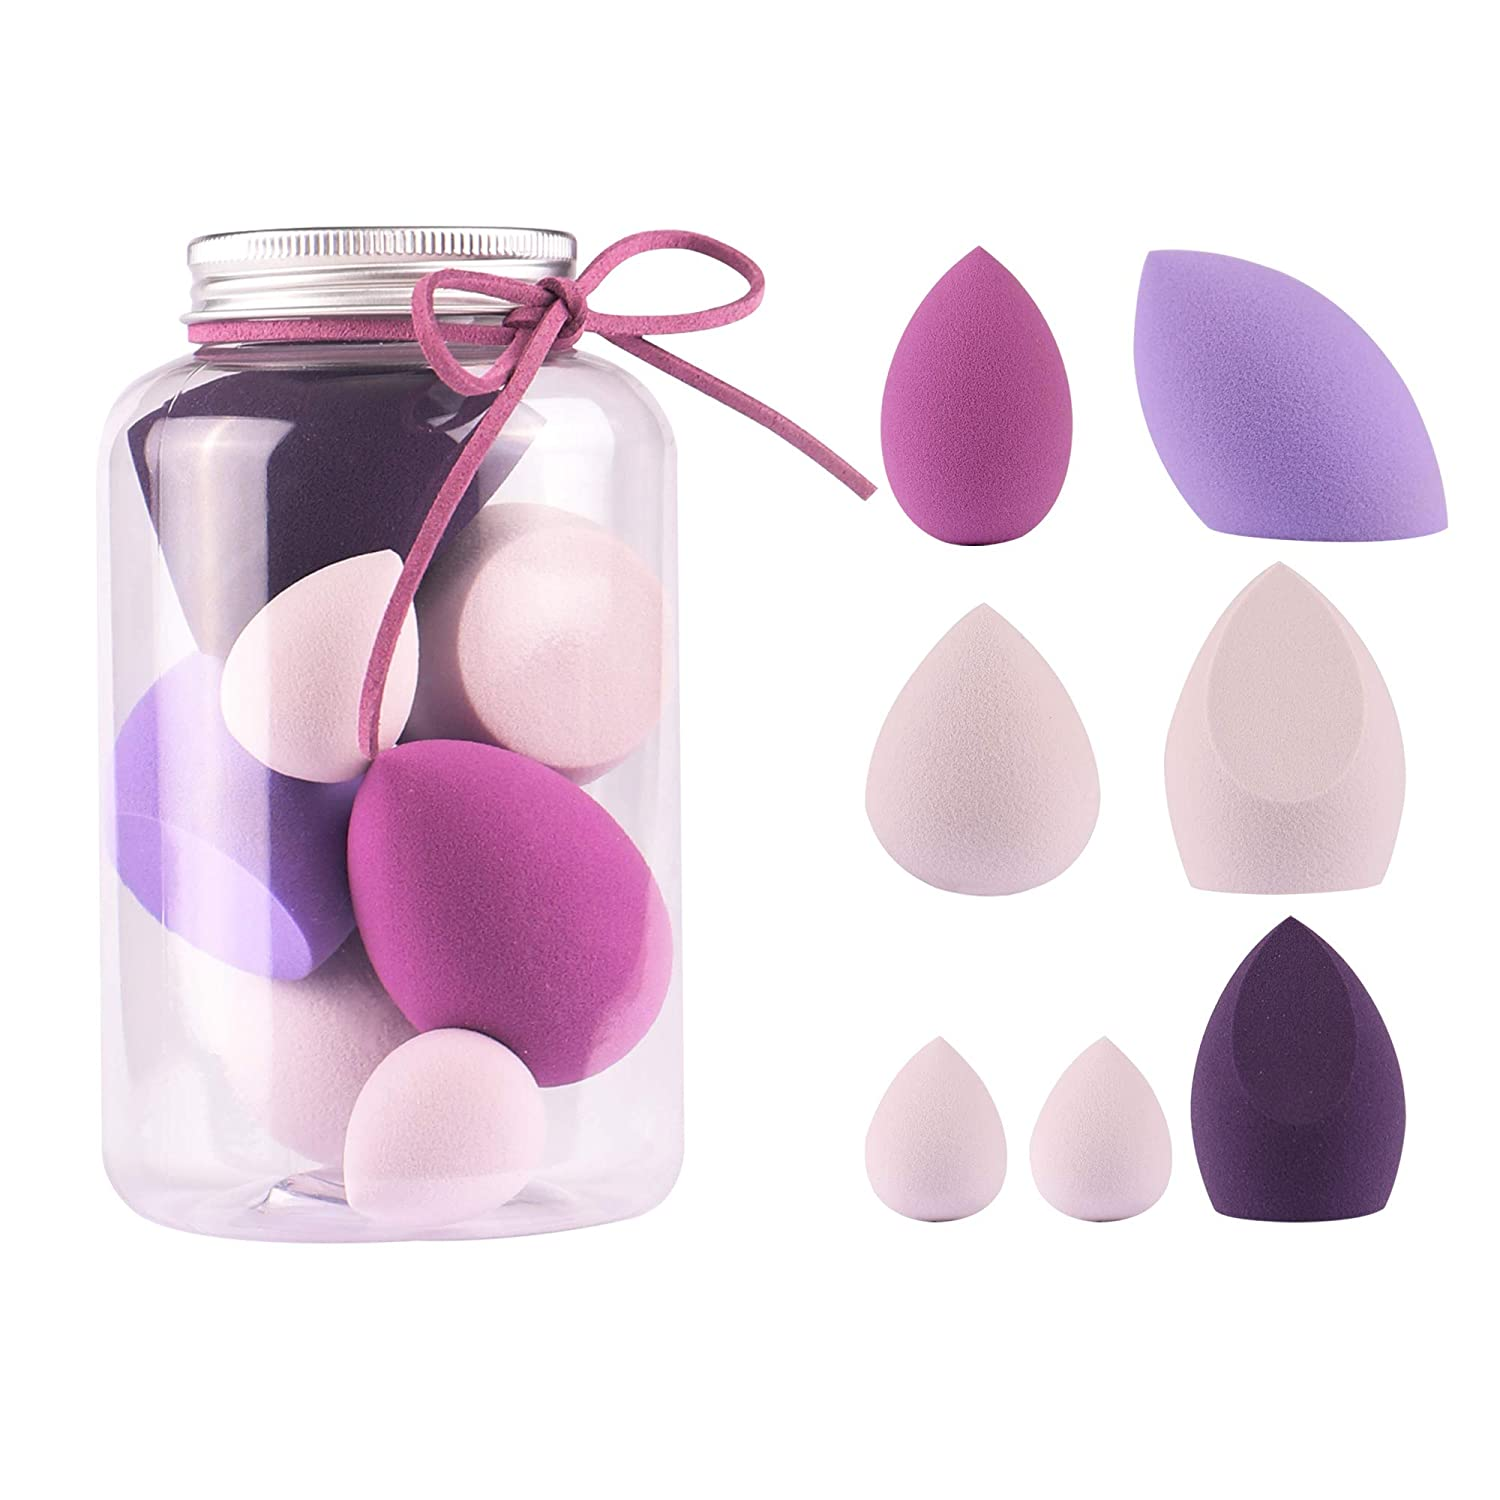 Anne's Giverny Makeup Blender Sponge Set-7pcs Soft Beauty Foundation Blending Eggs - for All Kinds of Cosmetics, Liquid Foundation,BB Cream, Powder, Concealer, Isolation,Etc,Multi-colored Gift